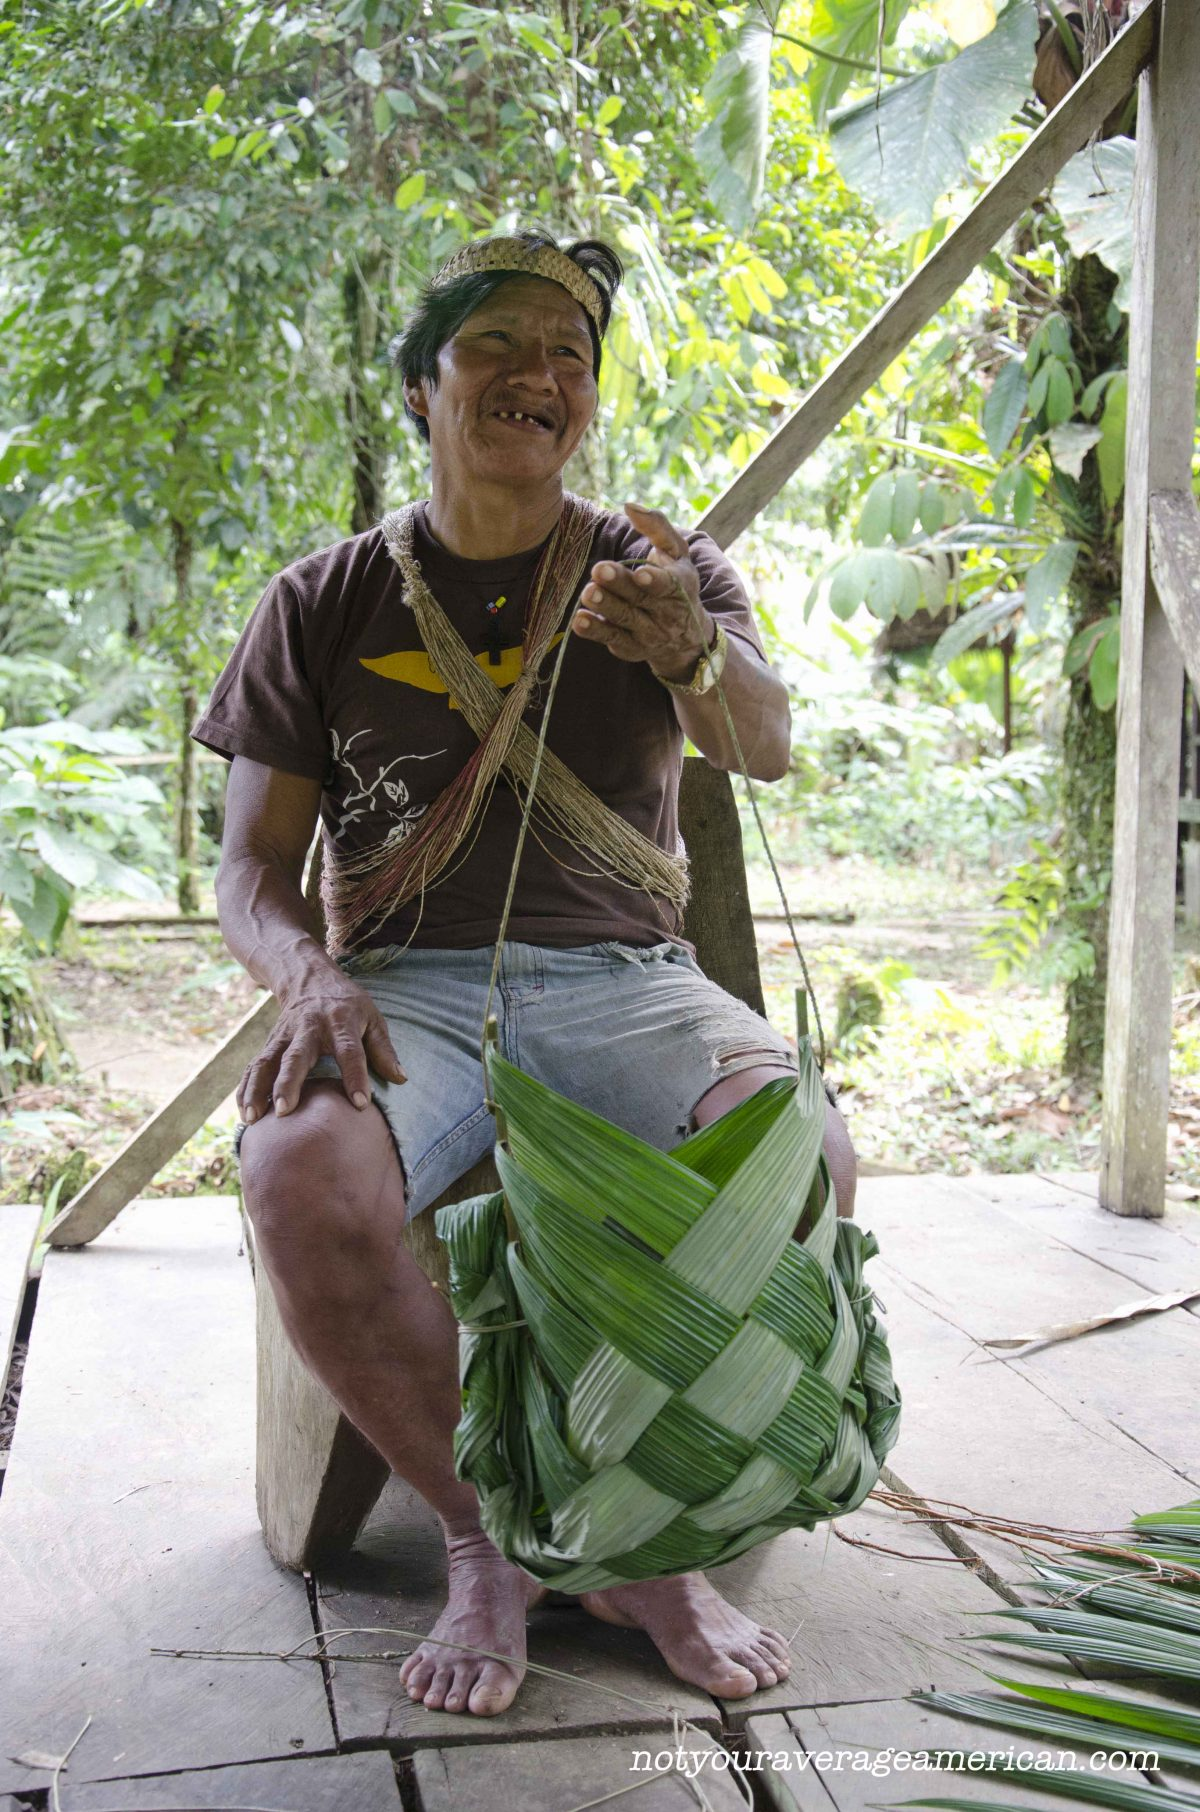 Our Huaorani guide, Bai, taught us how to make a basket that could be used for carrying freshly hunted meat or just harvested plants from the jungle | ©Angela Drake